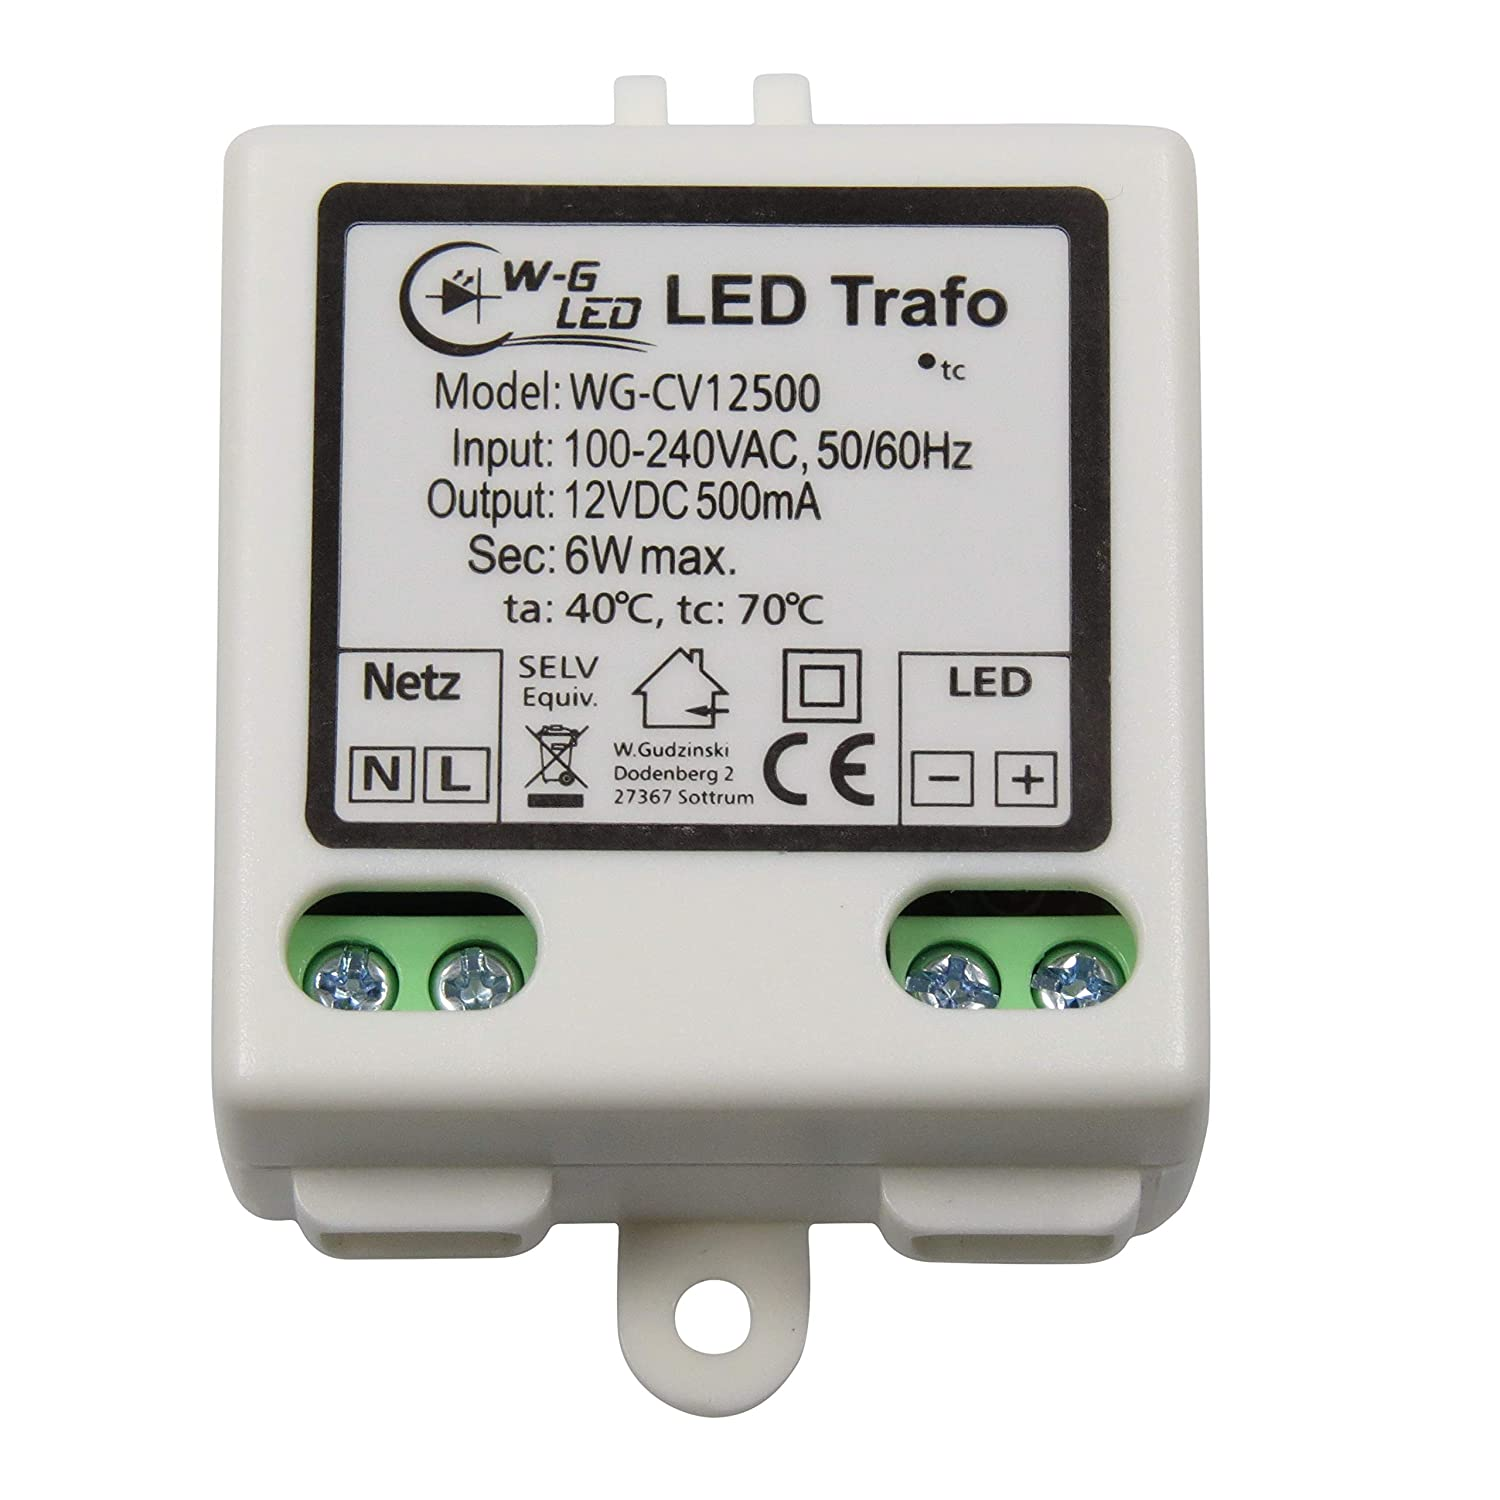 Transformador led 12 V, corriente continua, m/áximo 6 W W-G LED 1200500